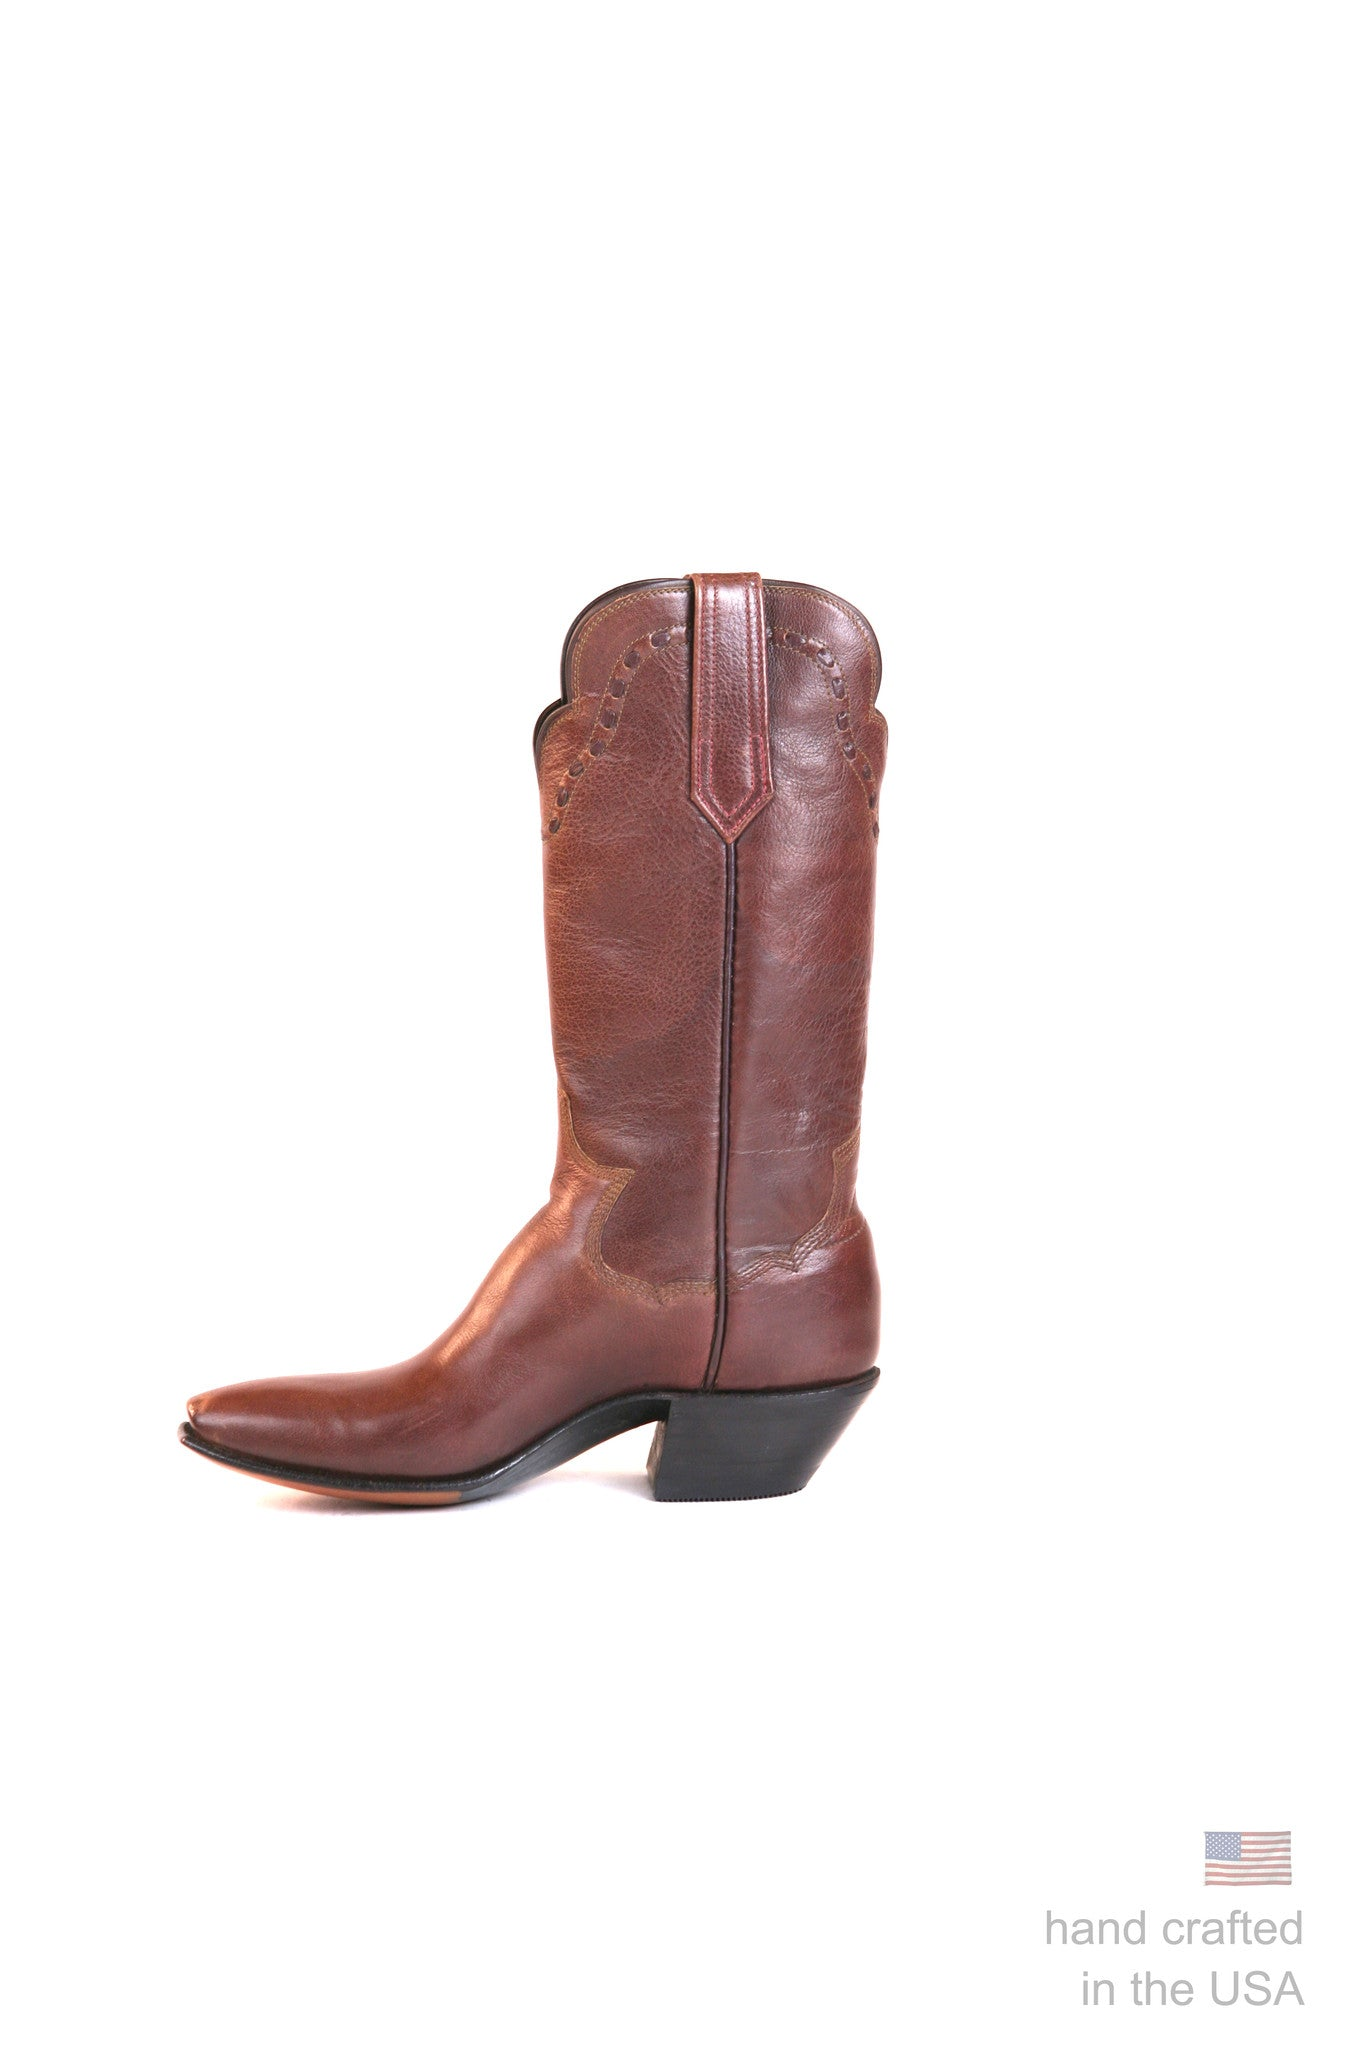 Singles: Boot 0017: Size 5A